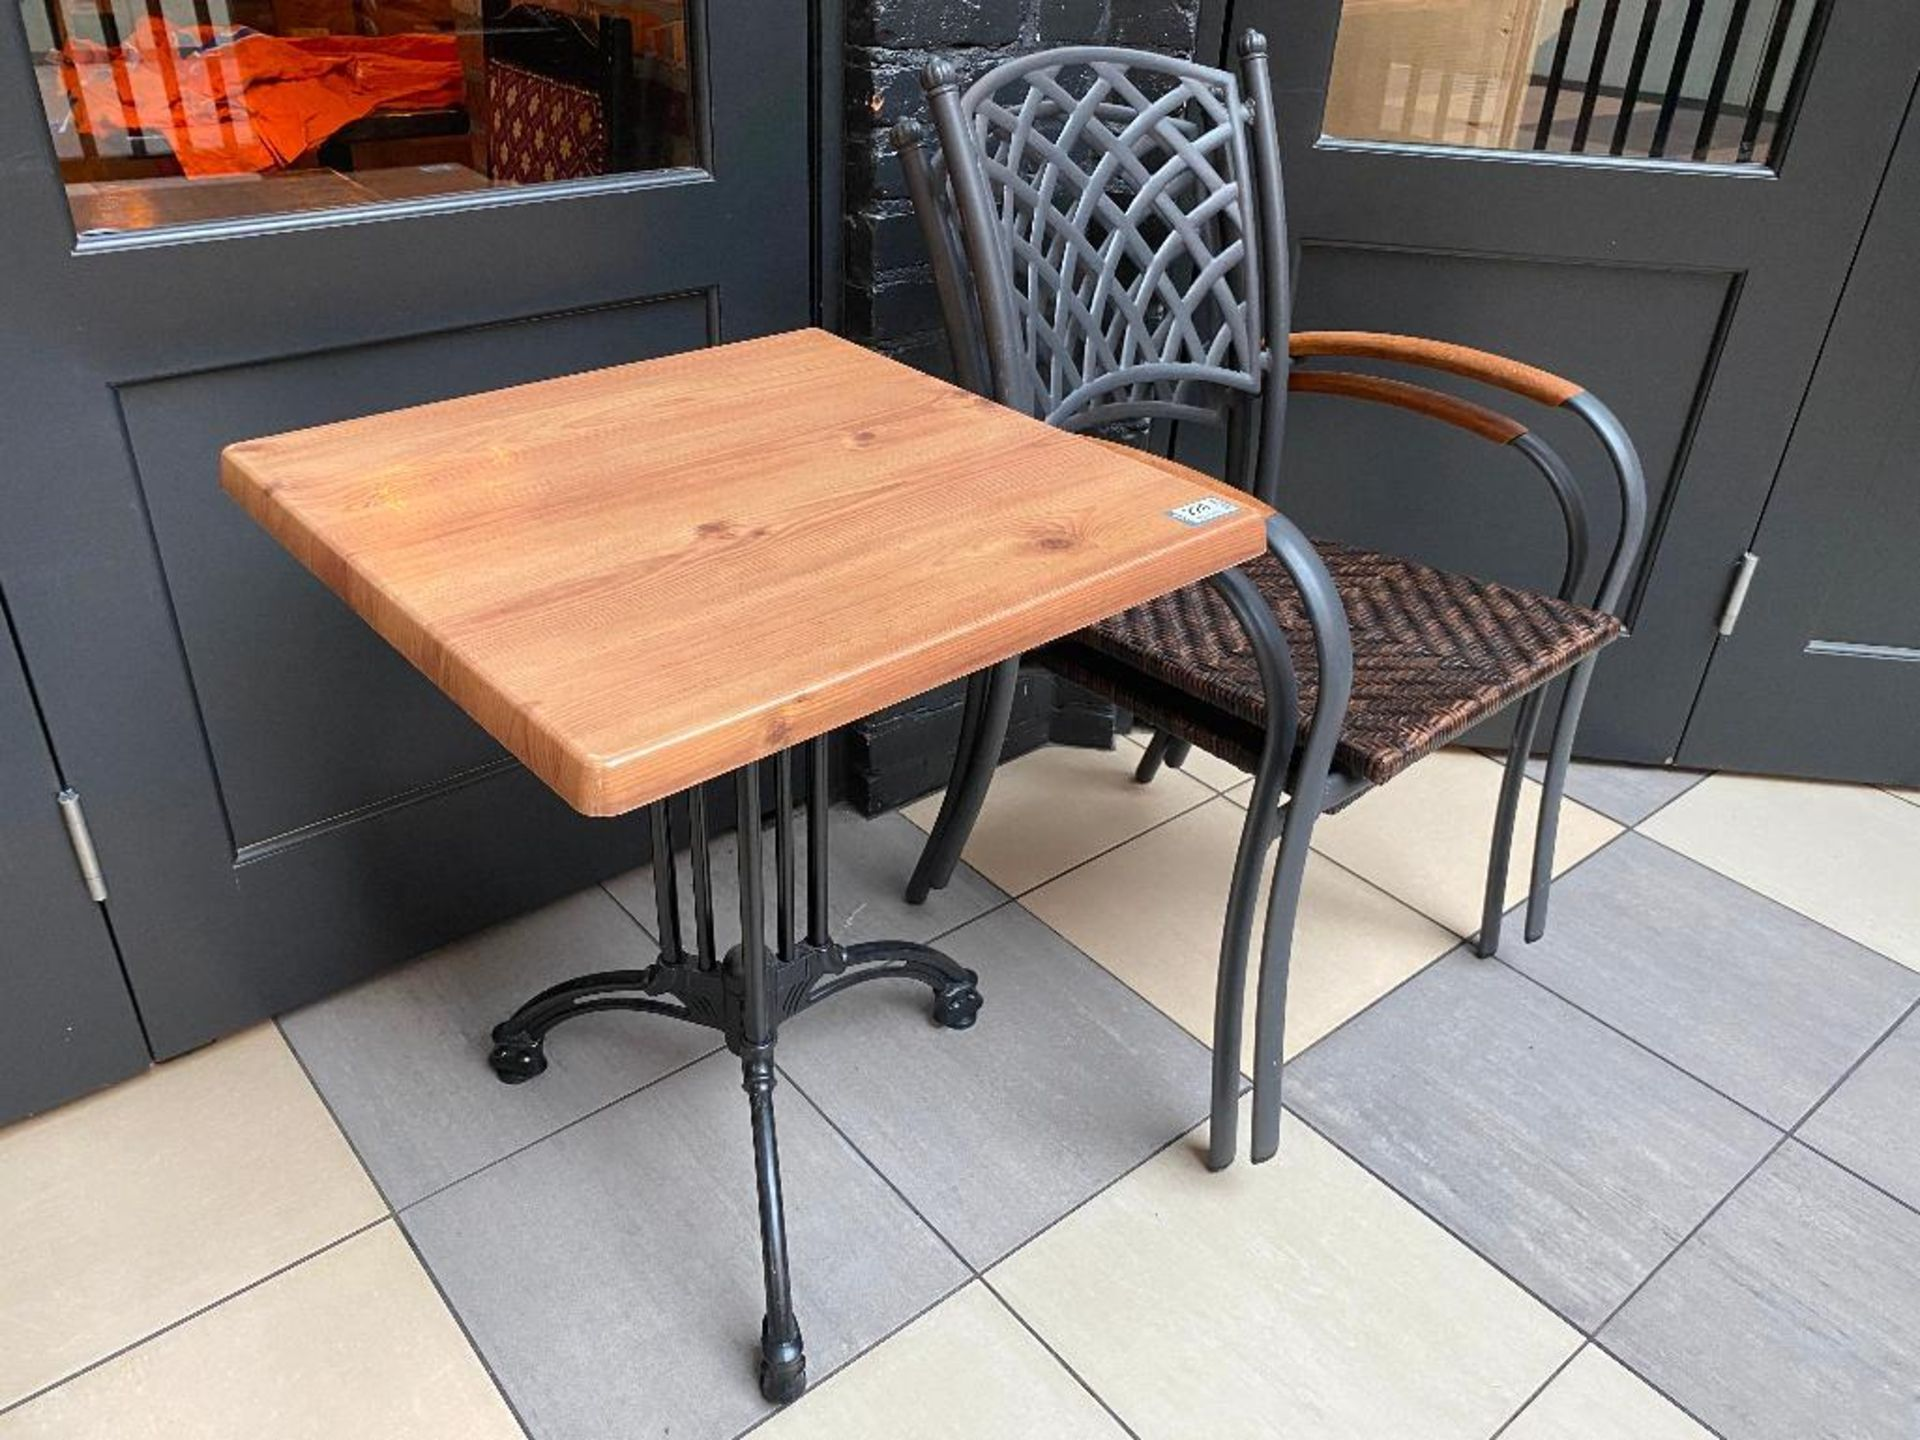 "TOPALIT 23"" X 23"" PATIO TABLE WITH 2 CHAIRS - Image 2 of 2"